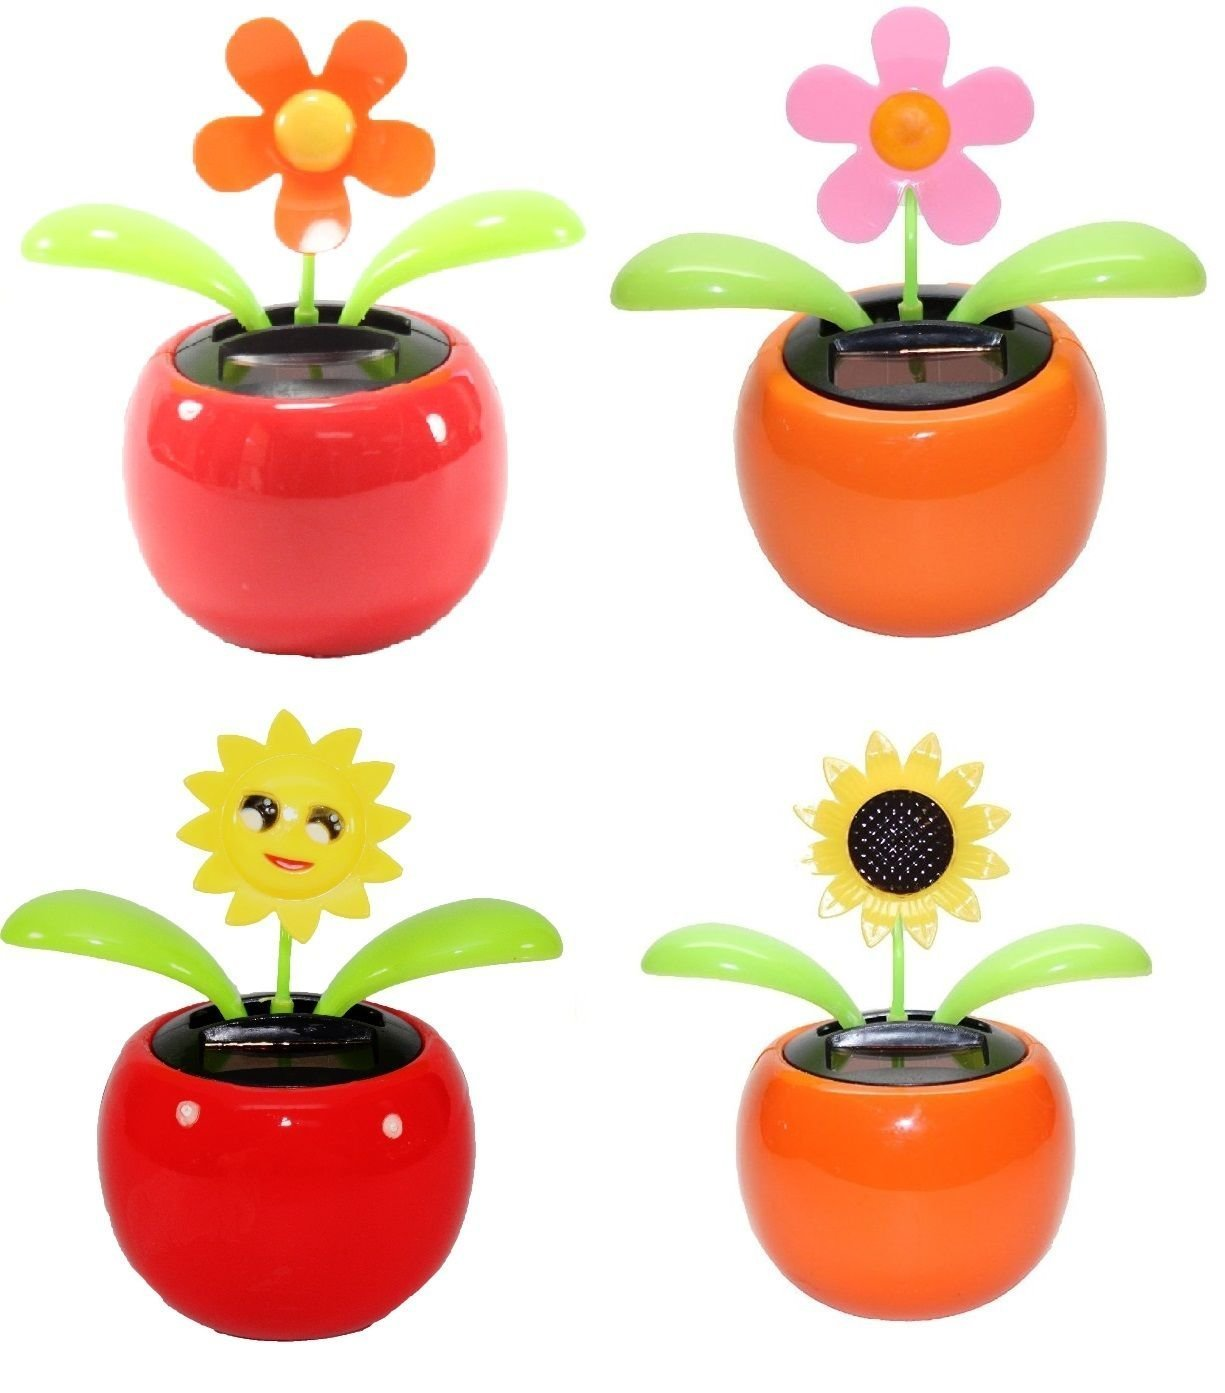 4 eco friendly bobblehead solar dancing flowers in colorful pots 4 eco friendly bobblehead solar dancing flowers in colorful pots decoration gift no battery required 1 orange daisy 1 pink daisy 1 smiley face izmirmasajfo